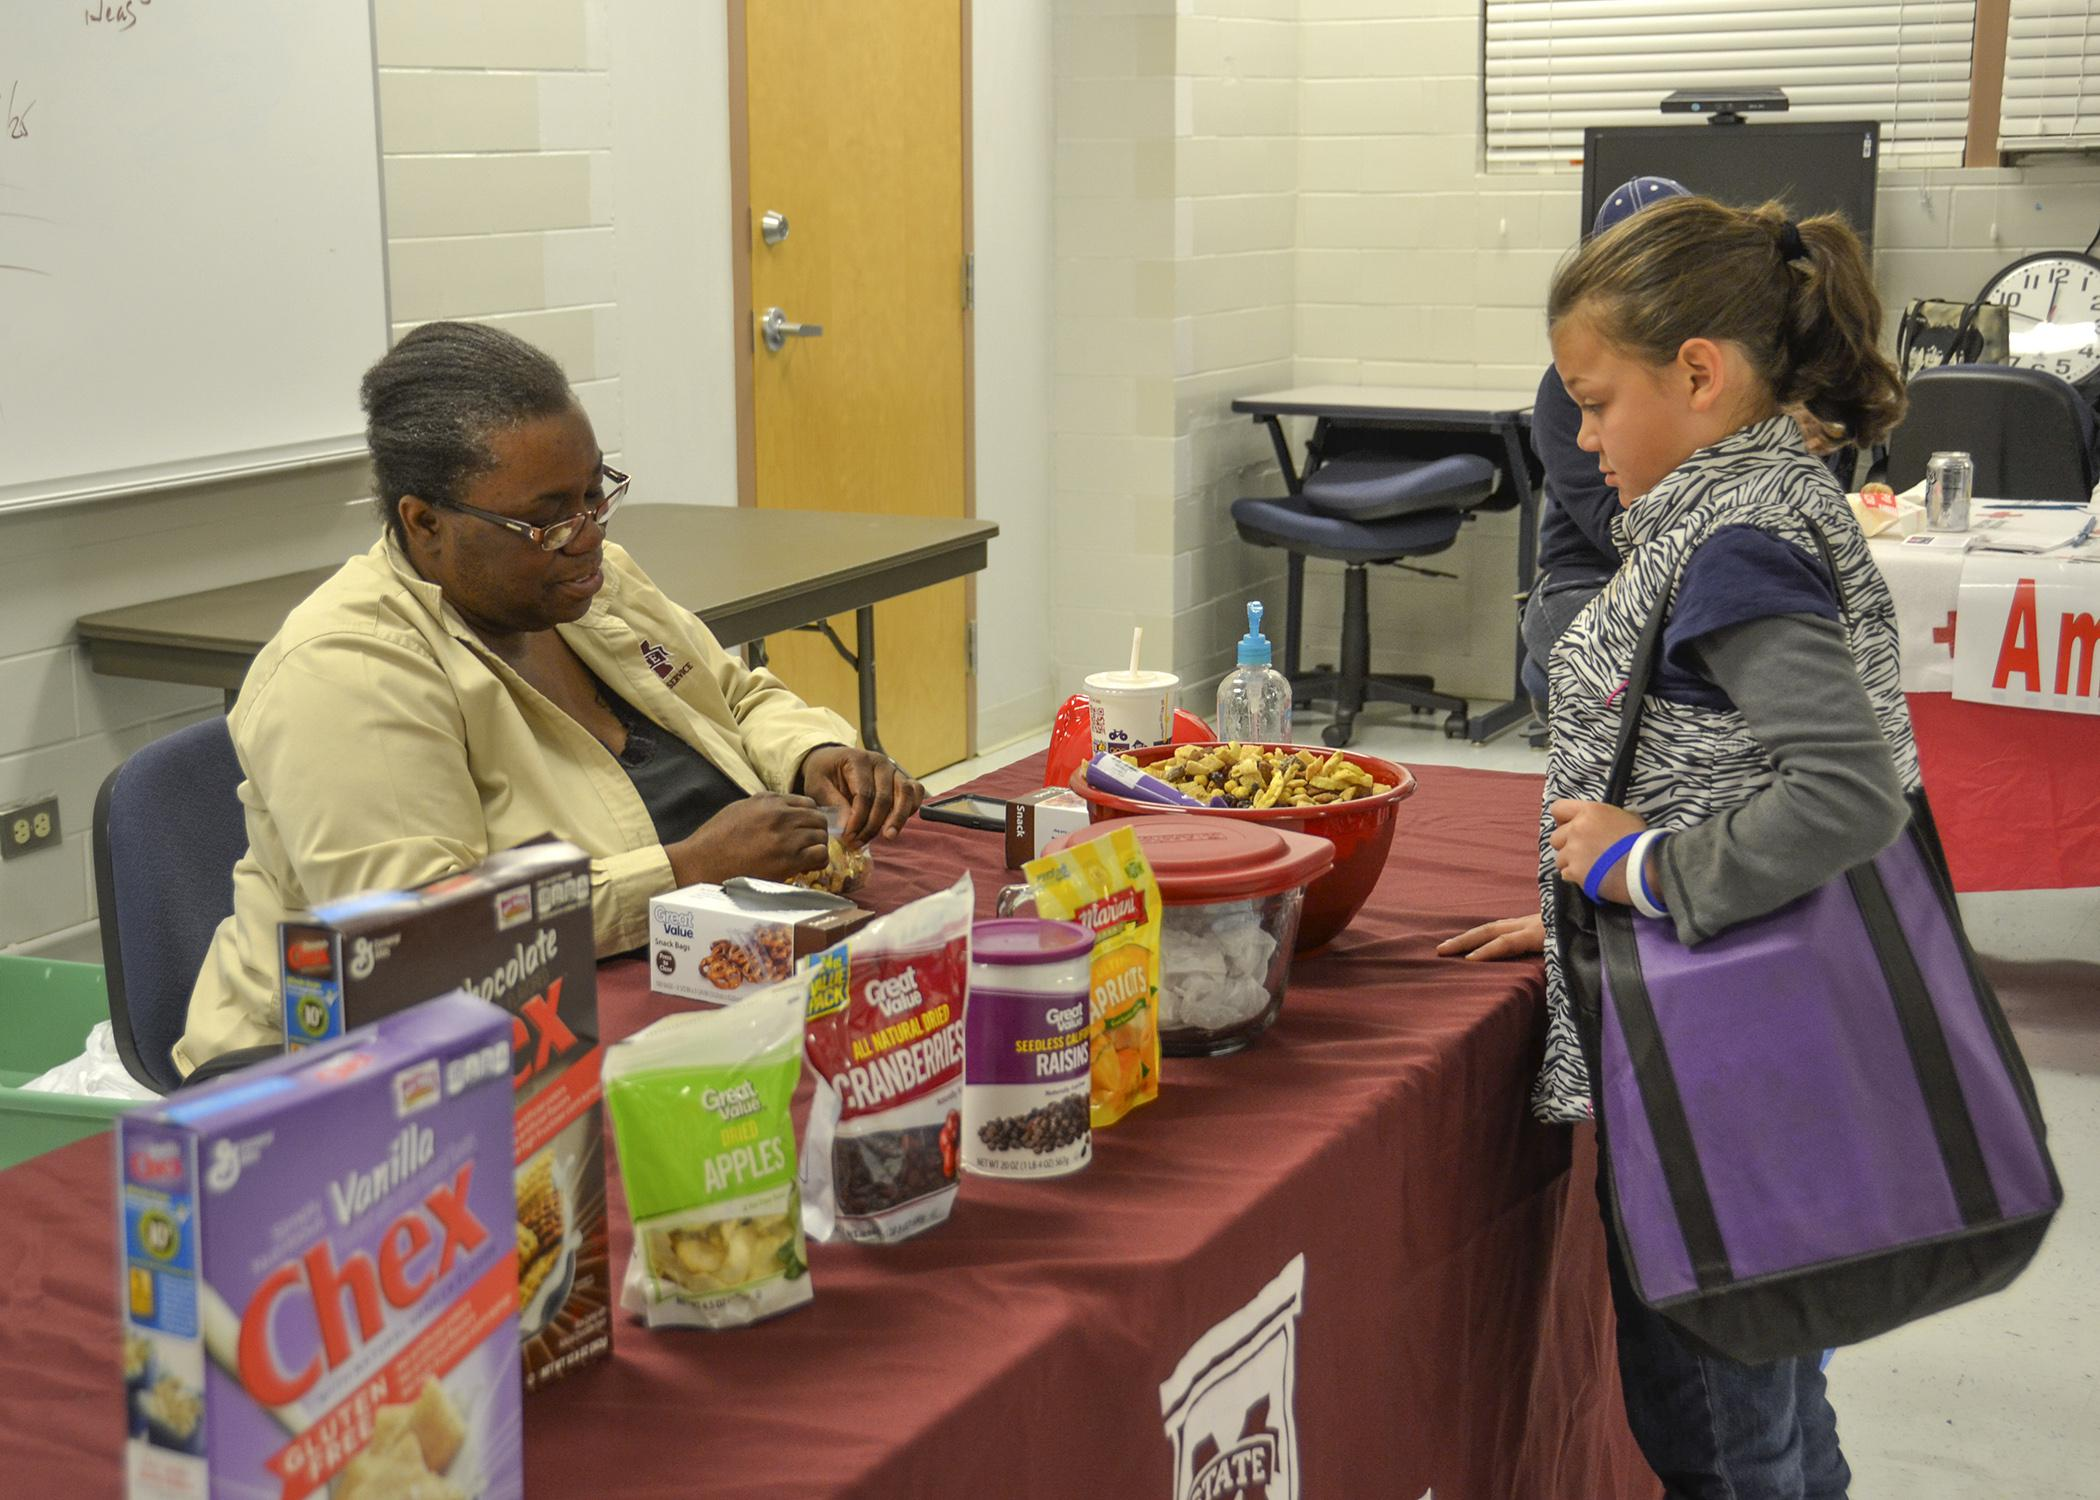 Mississippi State University Extension Service Child and Family Development agent Terri Thompson, left, gives Isabella Cornish a sample of an easy-to-make snack mix. The MSU Extension Service was one of several organizations participating in the Super Saturday healthy cooking event in Pascagoula, Mississippi on Nov. 15, 2014. (Photo by MSU Extension Service/Susan Collins-Smith)